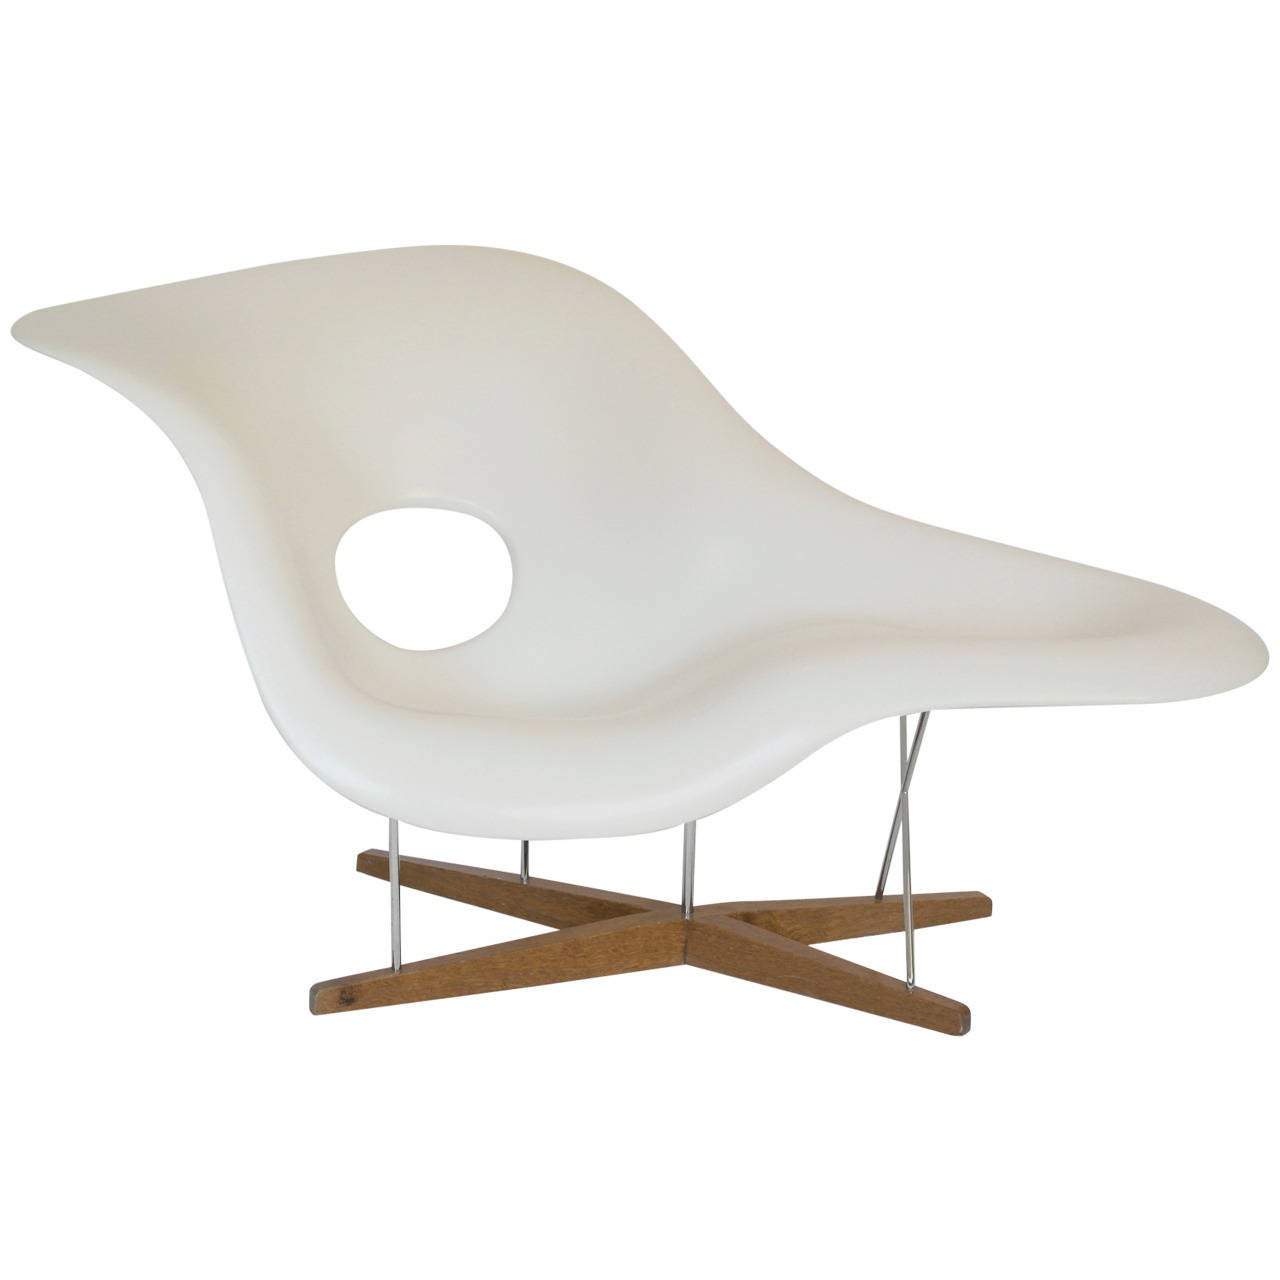 Vitra edition la chaise by charles and ray eames at 1stdibs - Chaise charles et ray eames ...